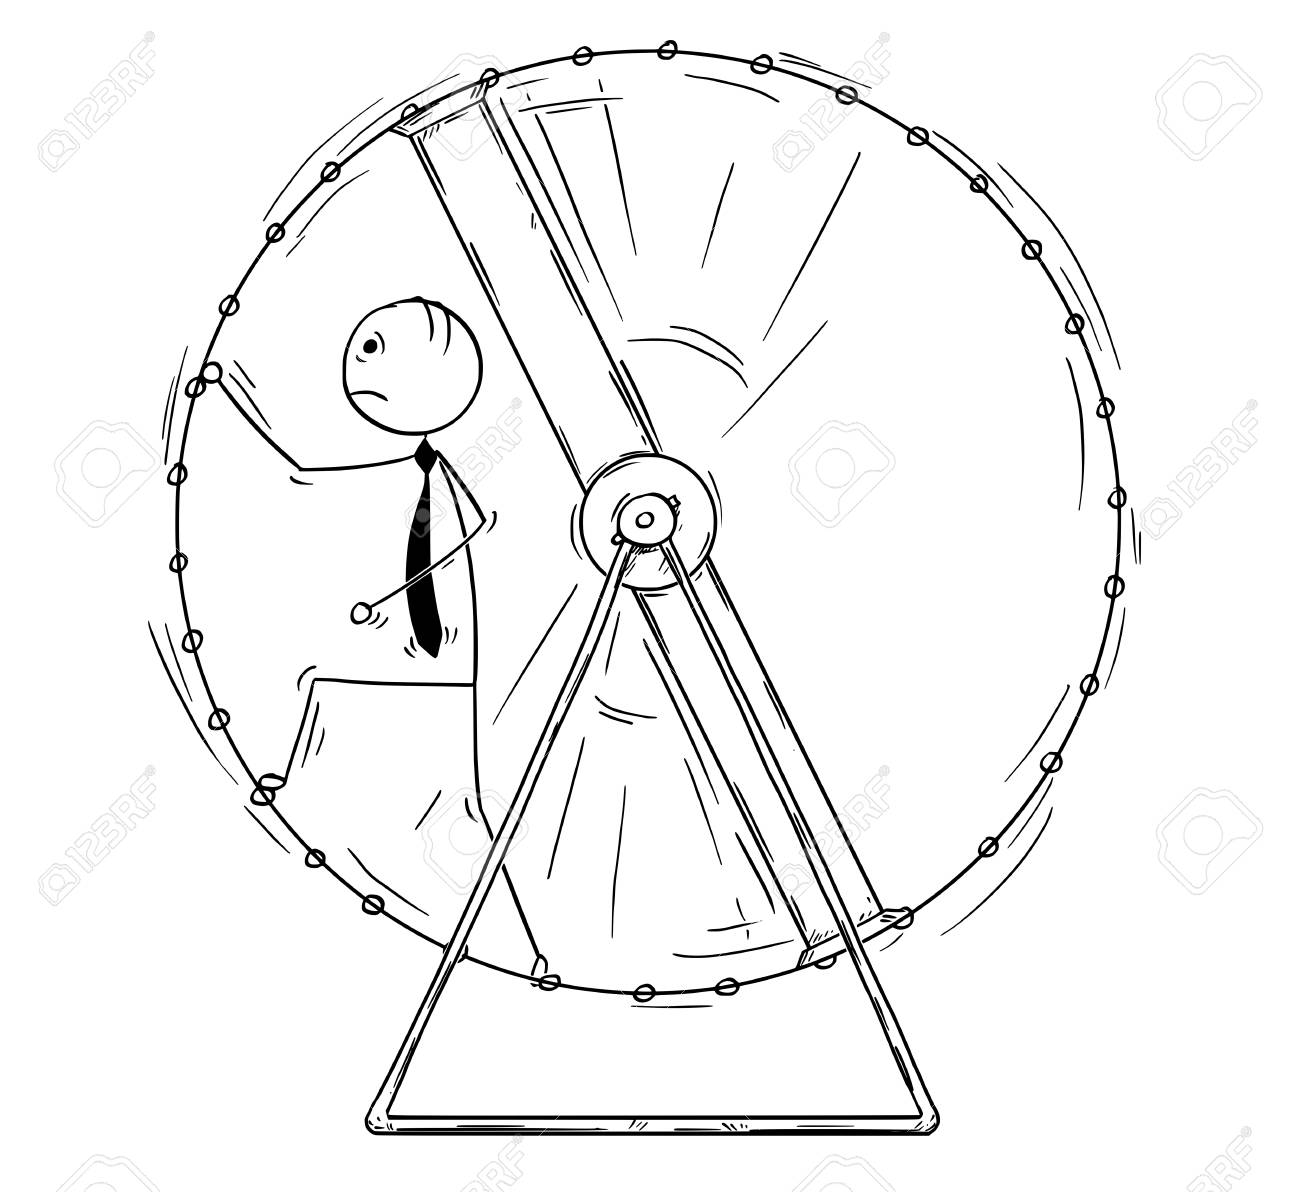 Cartoon stick man drawing conceptual illustration of exhausted businessman in squirrel wheel doing ineffective routine job. - 92626708